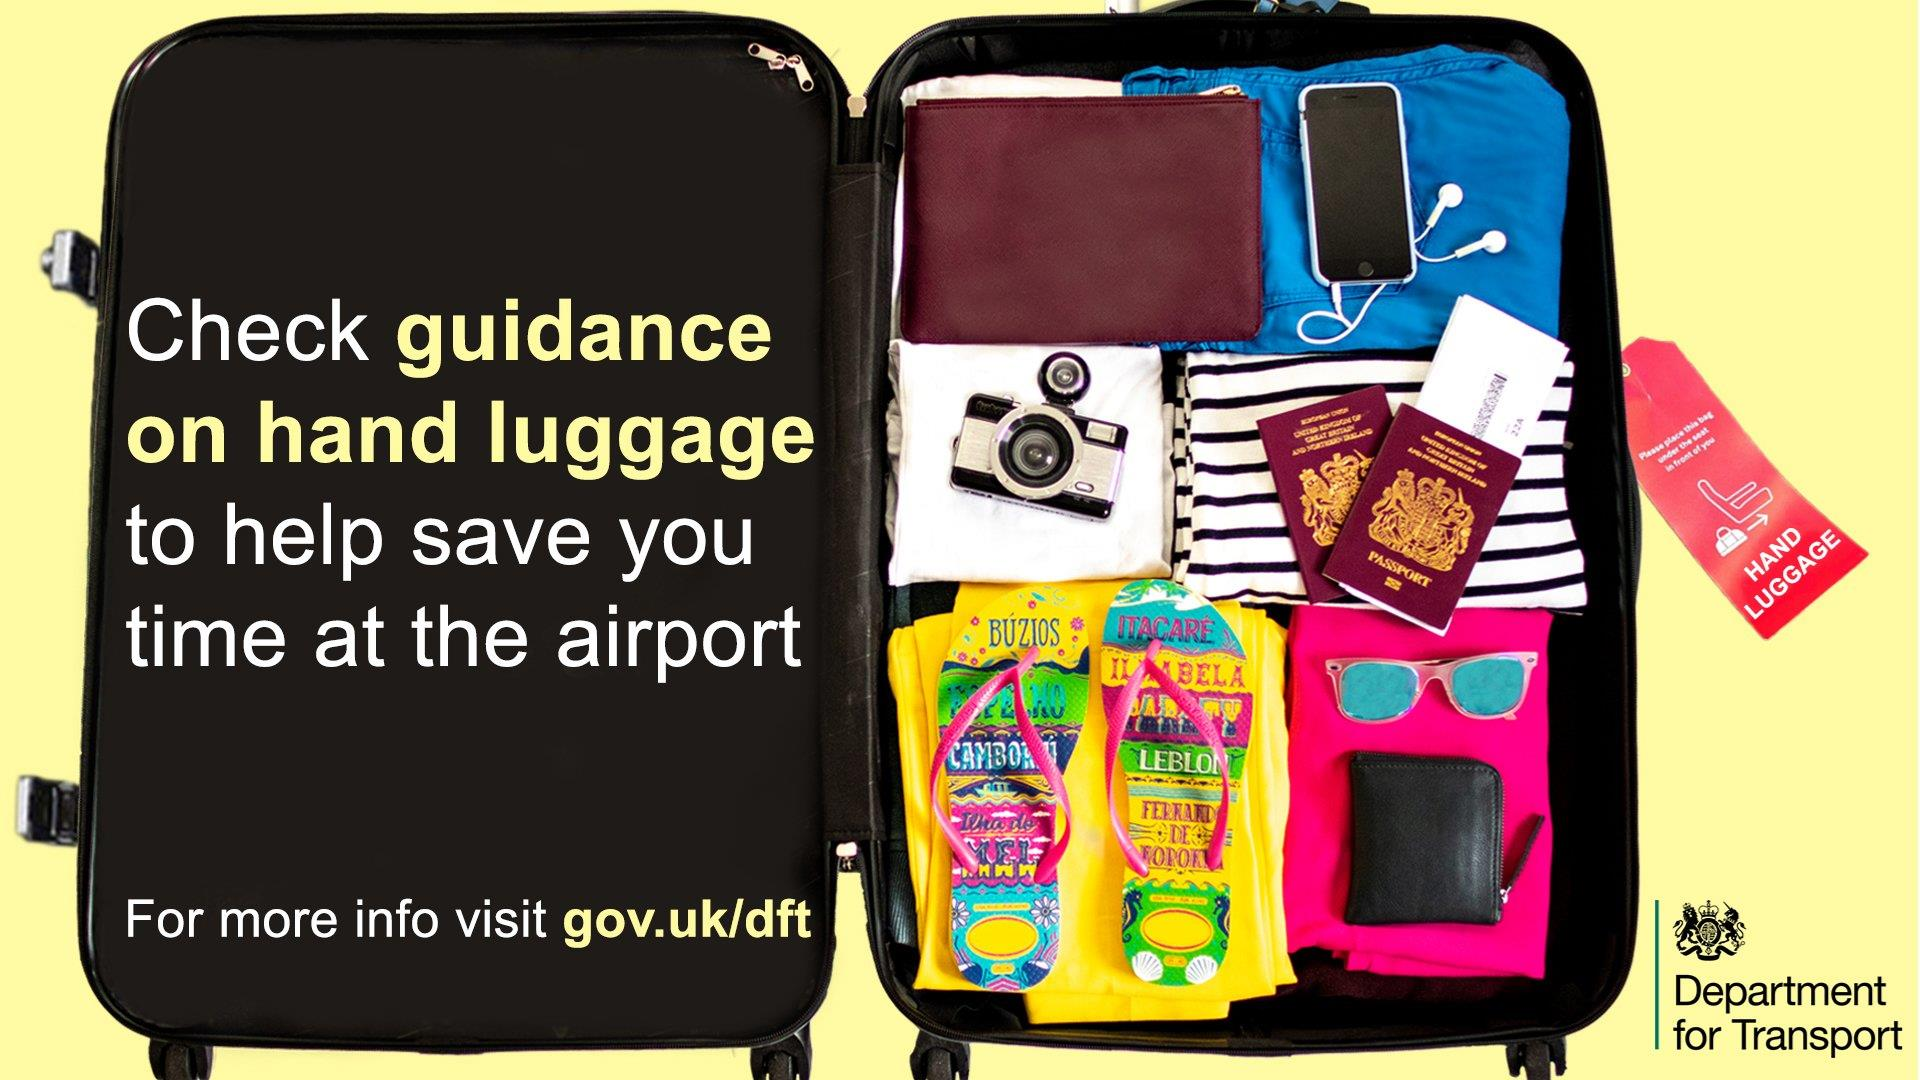 Be Travel Aware - pack smartly and prepare for security